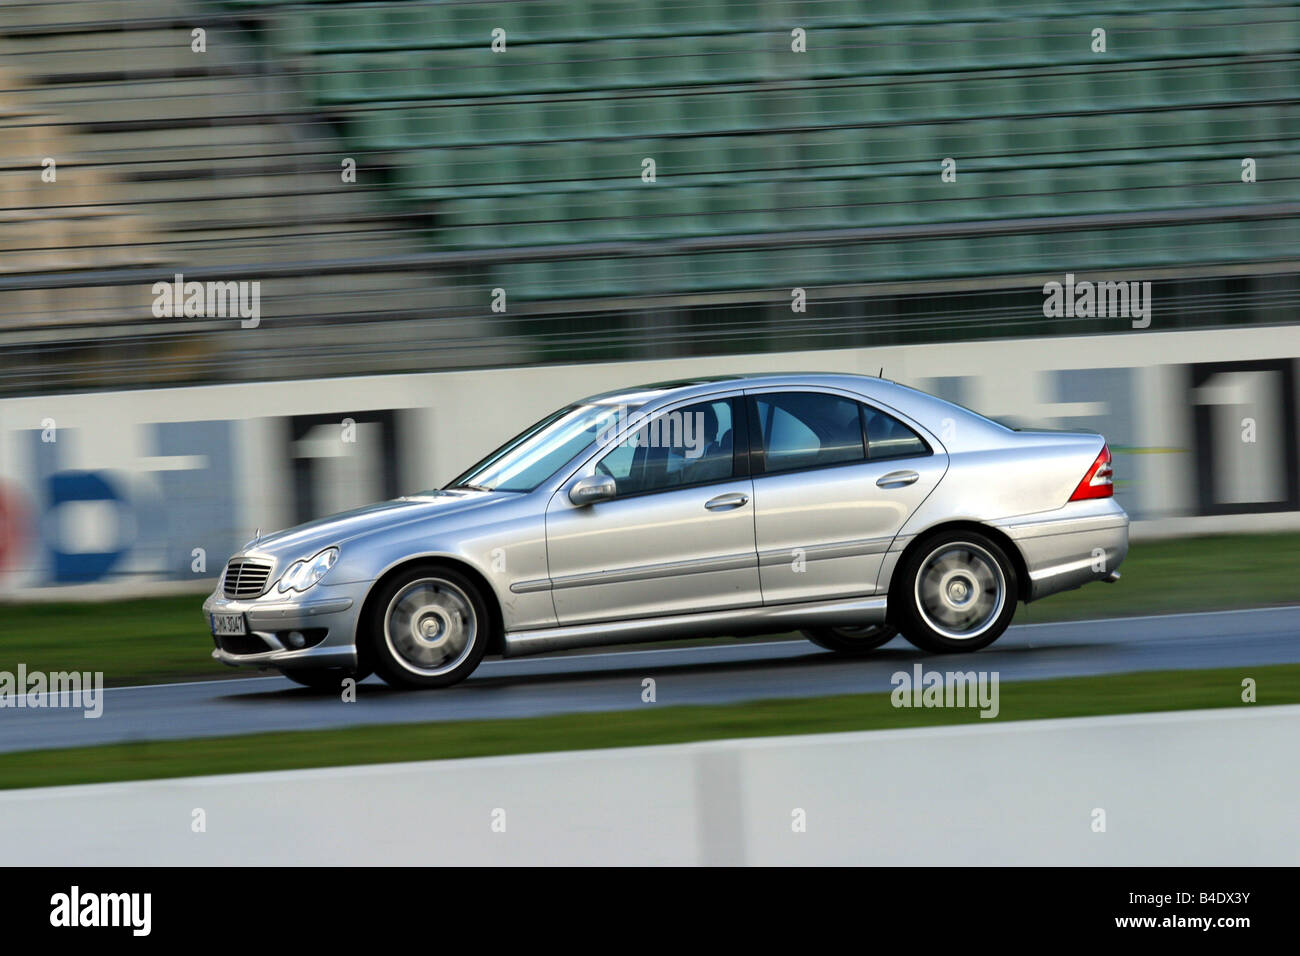 Car, Mercedes C 30 CDI AMG, model year 2002, silver, medium class, Tuning, 231 PS, driving, race track, test track, - Stock Image